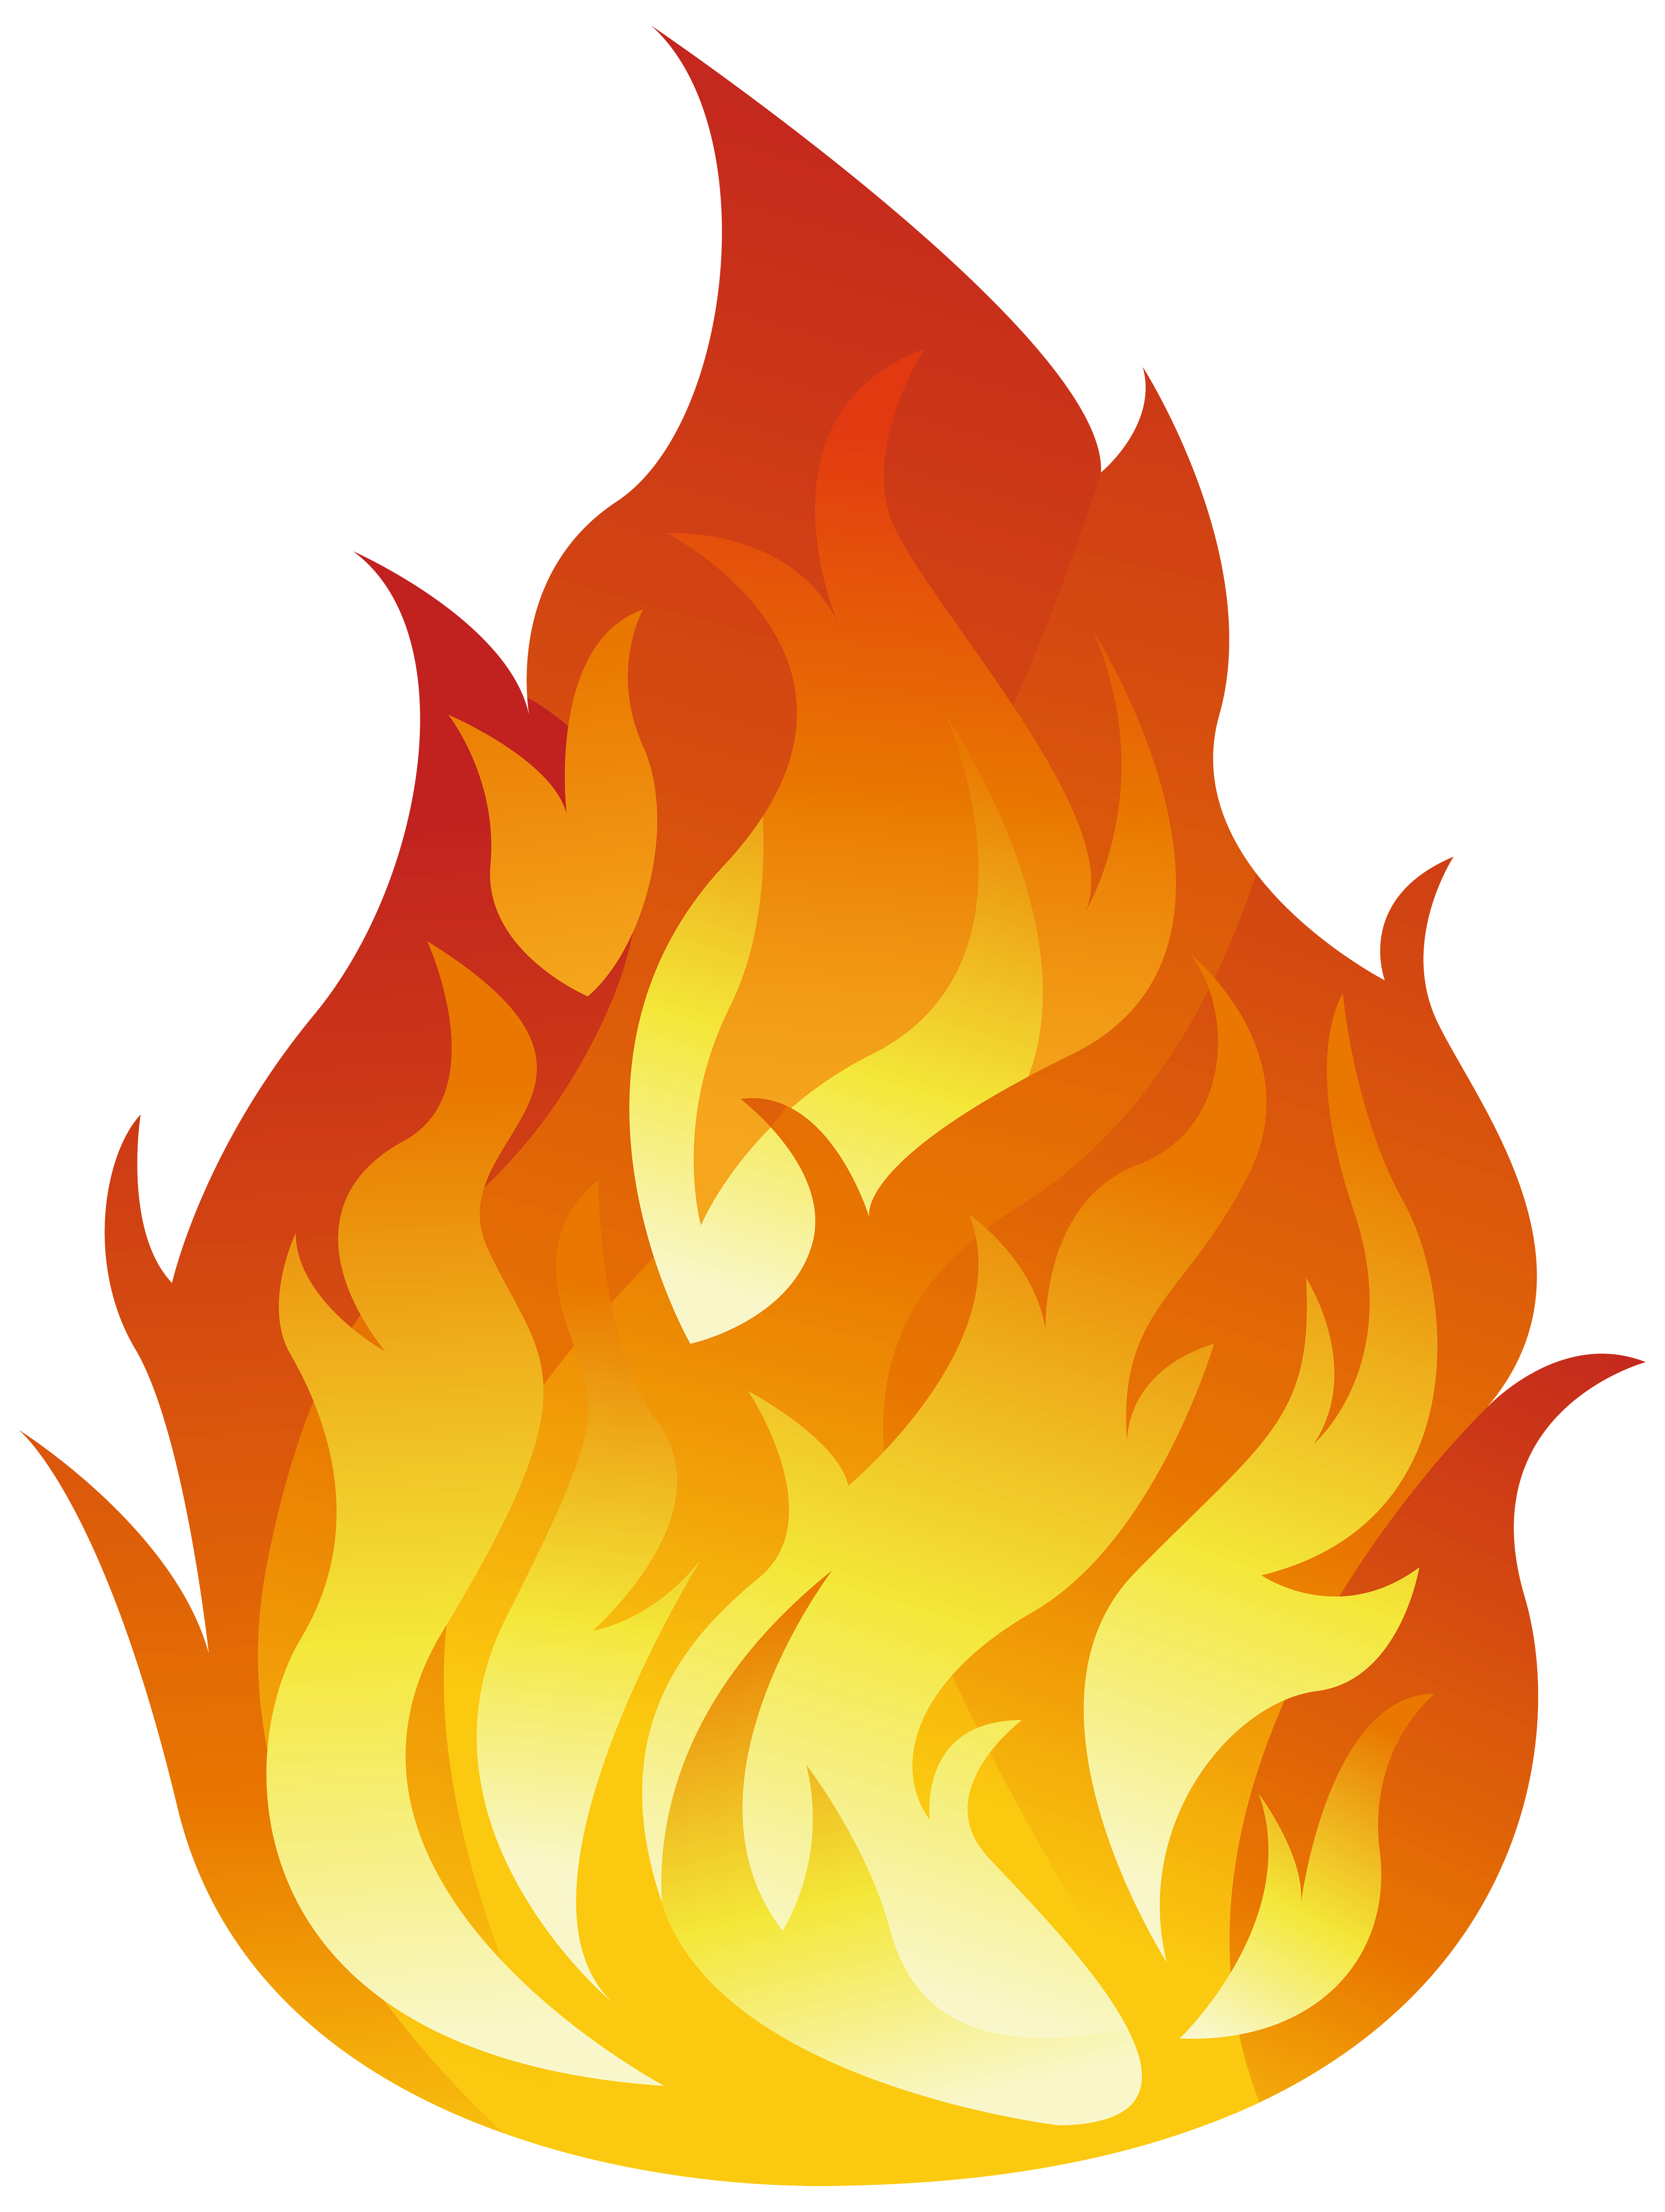 Wildfire clipart png clip art royalty free stock Pin by ELAINE HOLMES on CHILDREN\'S WORSHIP | Flame art, Fire ... clip art royalty free stock